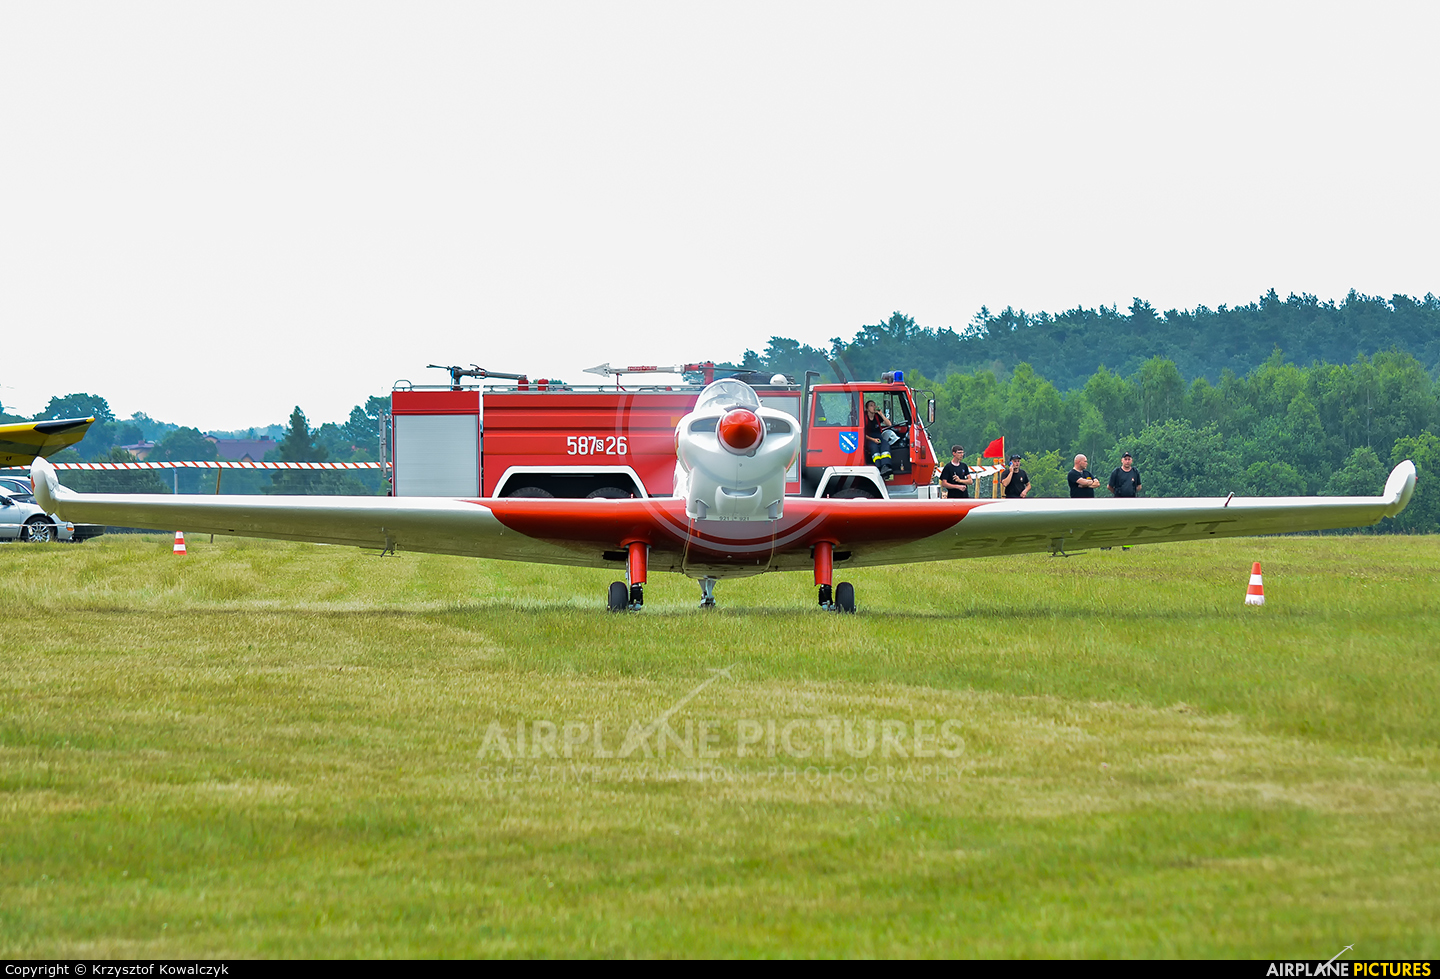 Aeroclub ROW SP-EMT aircraft at Rybnik - Gotartowice